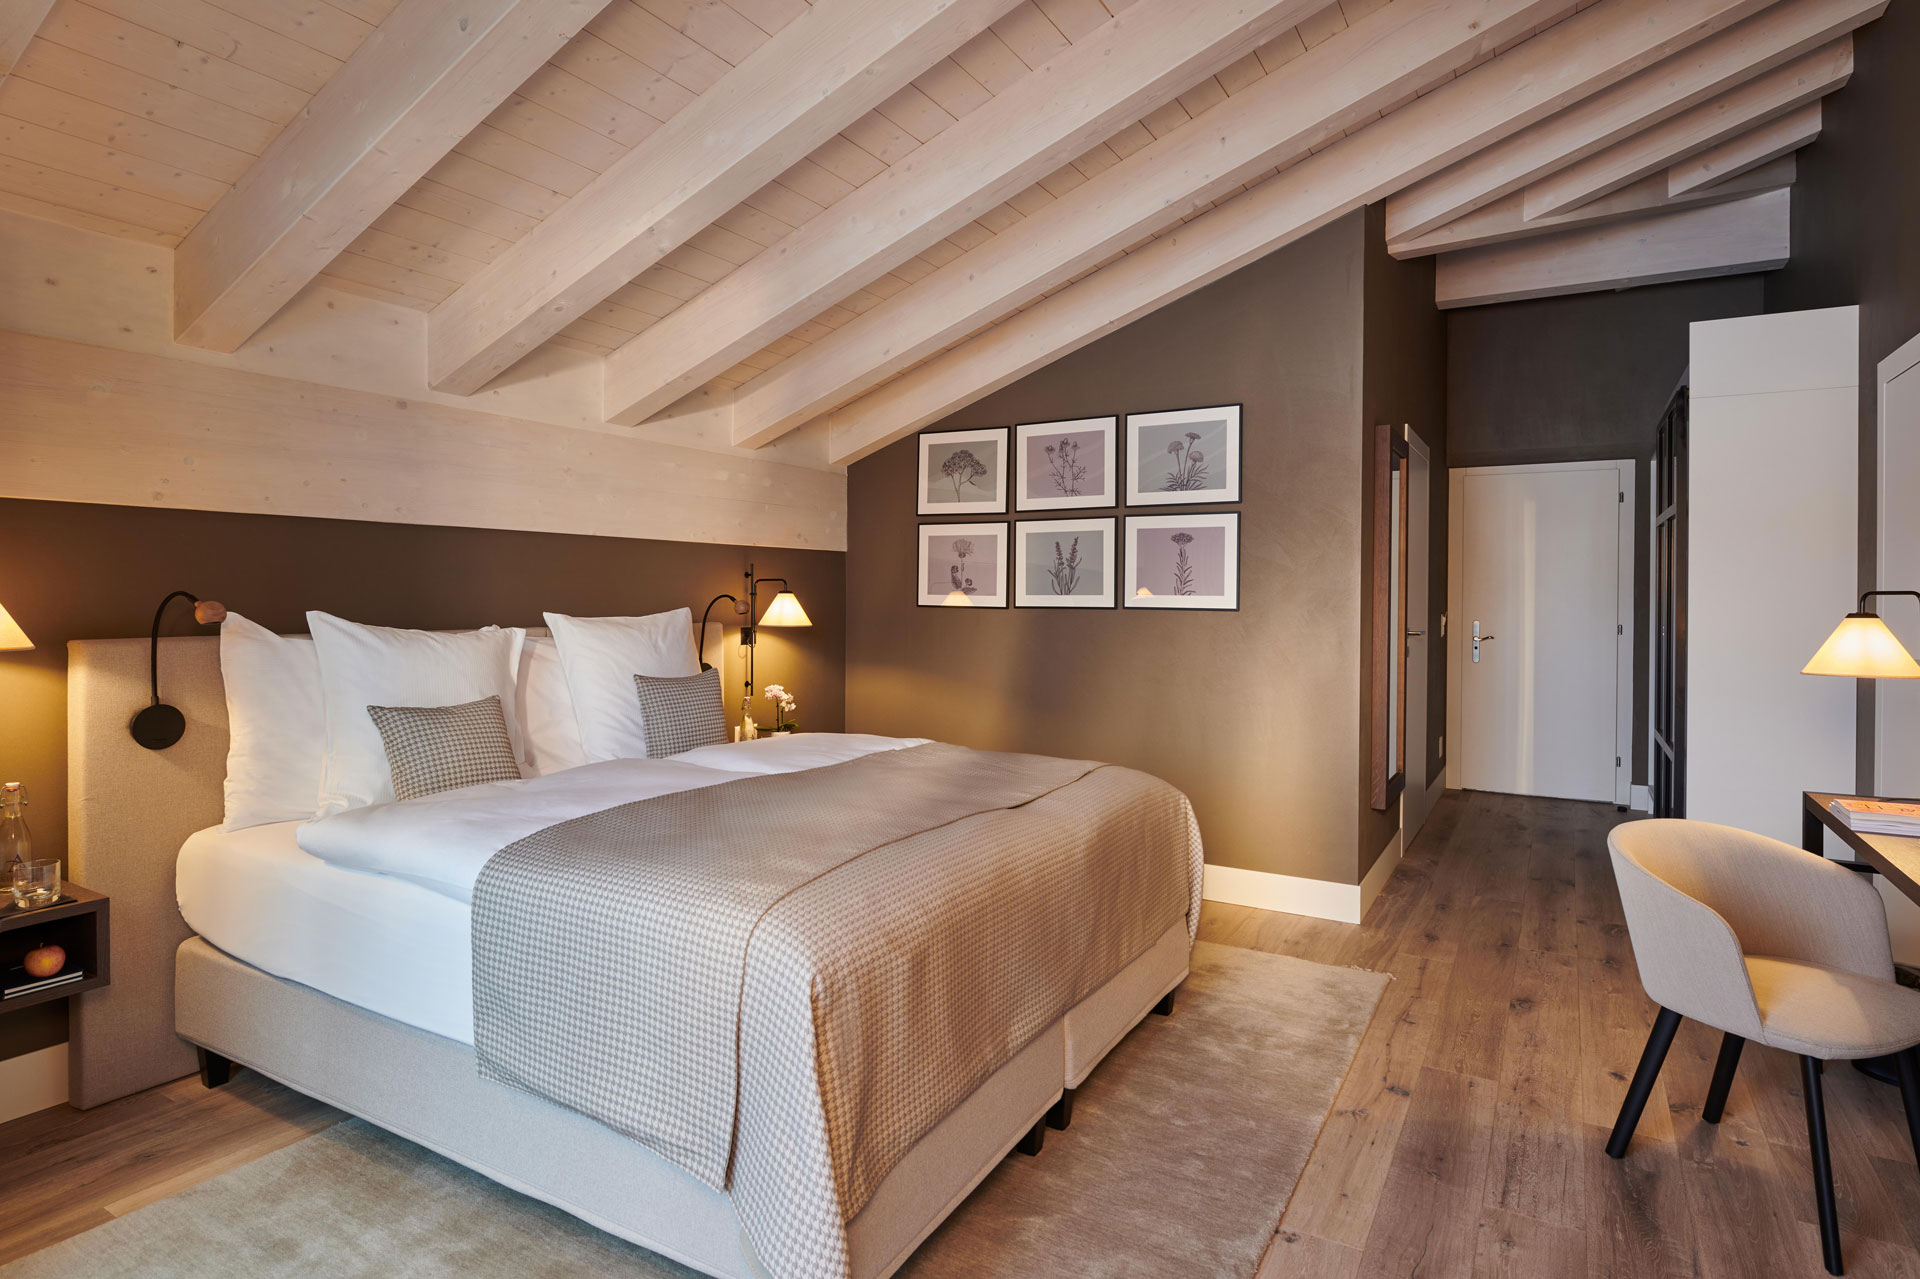 New-luxury-rooms-Zermatt-Hotel.jpg